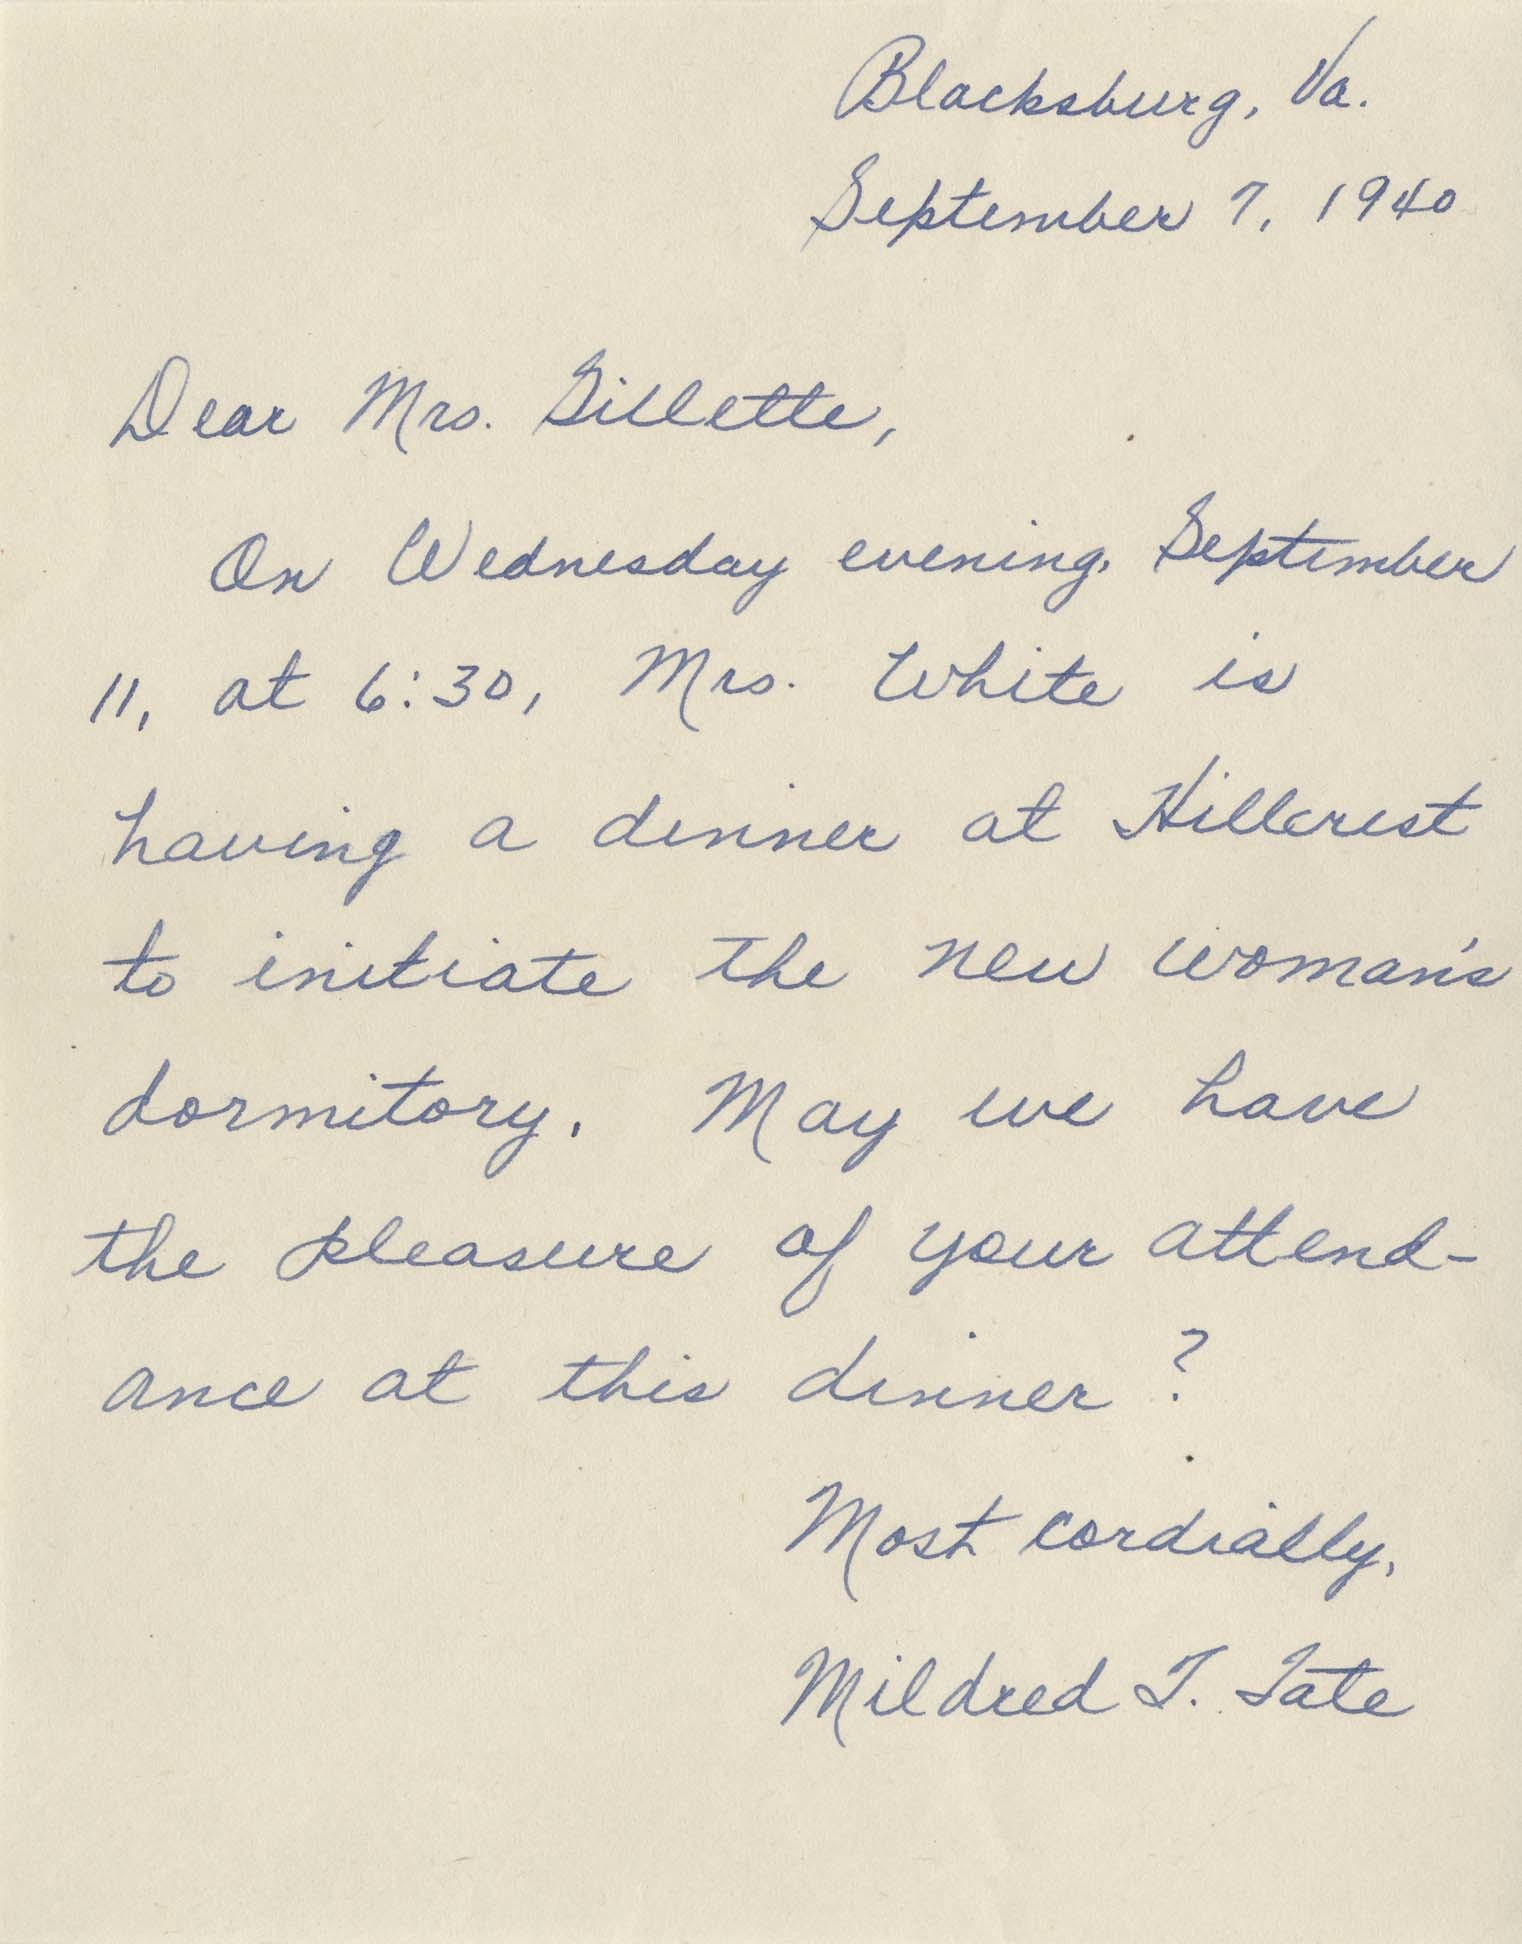 Ms1952-002_TateMildred_Letter_1940_0907.jpg